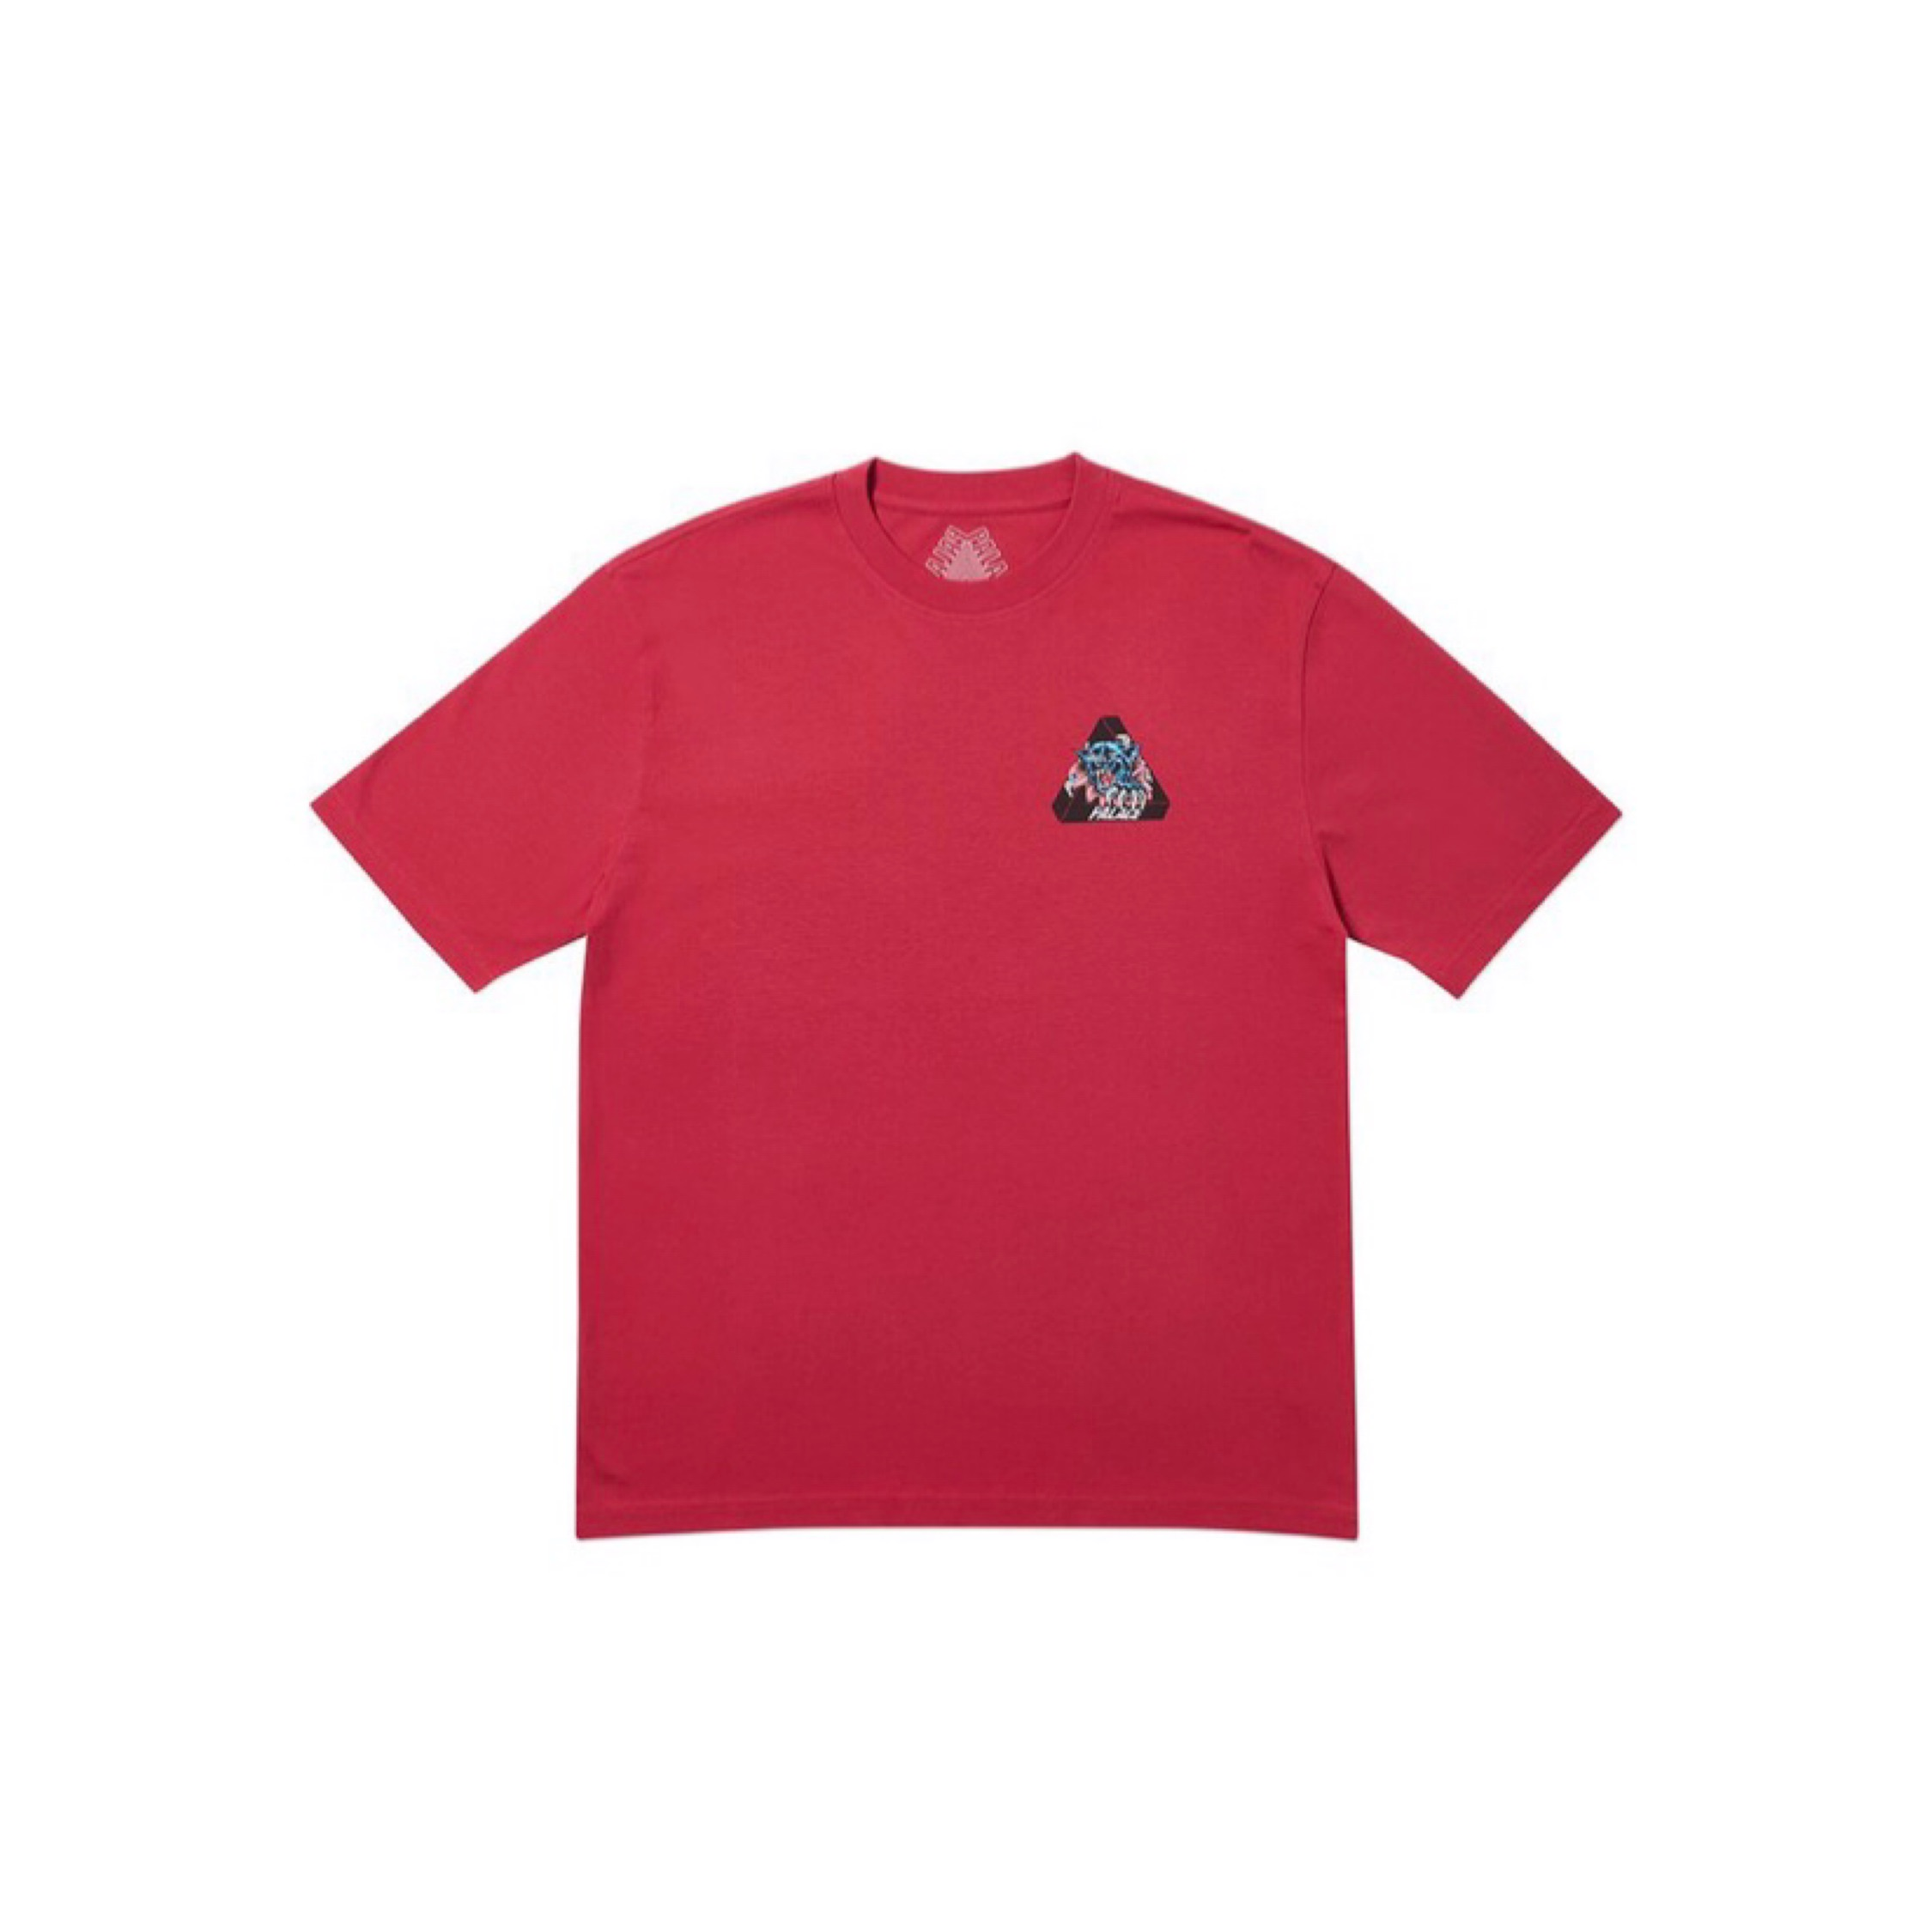 Palace Ripped Tri Ferg Tee   Trusted 300+ Sales